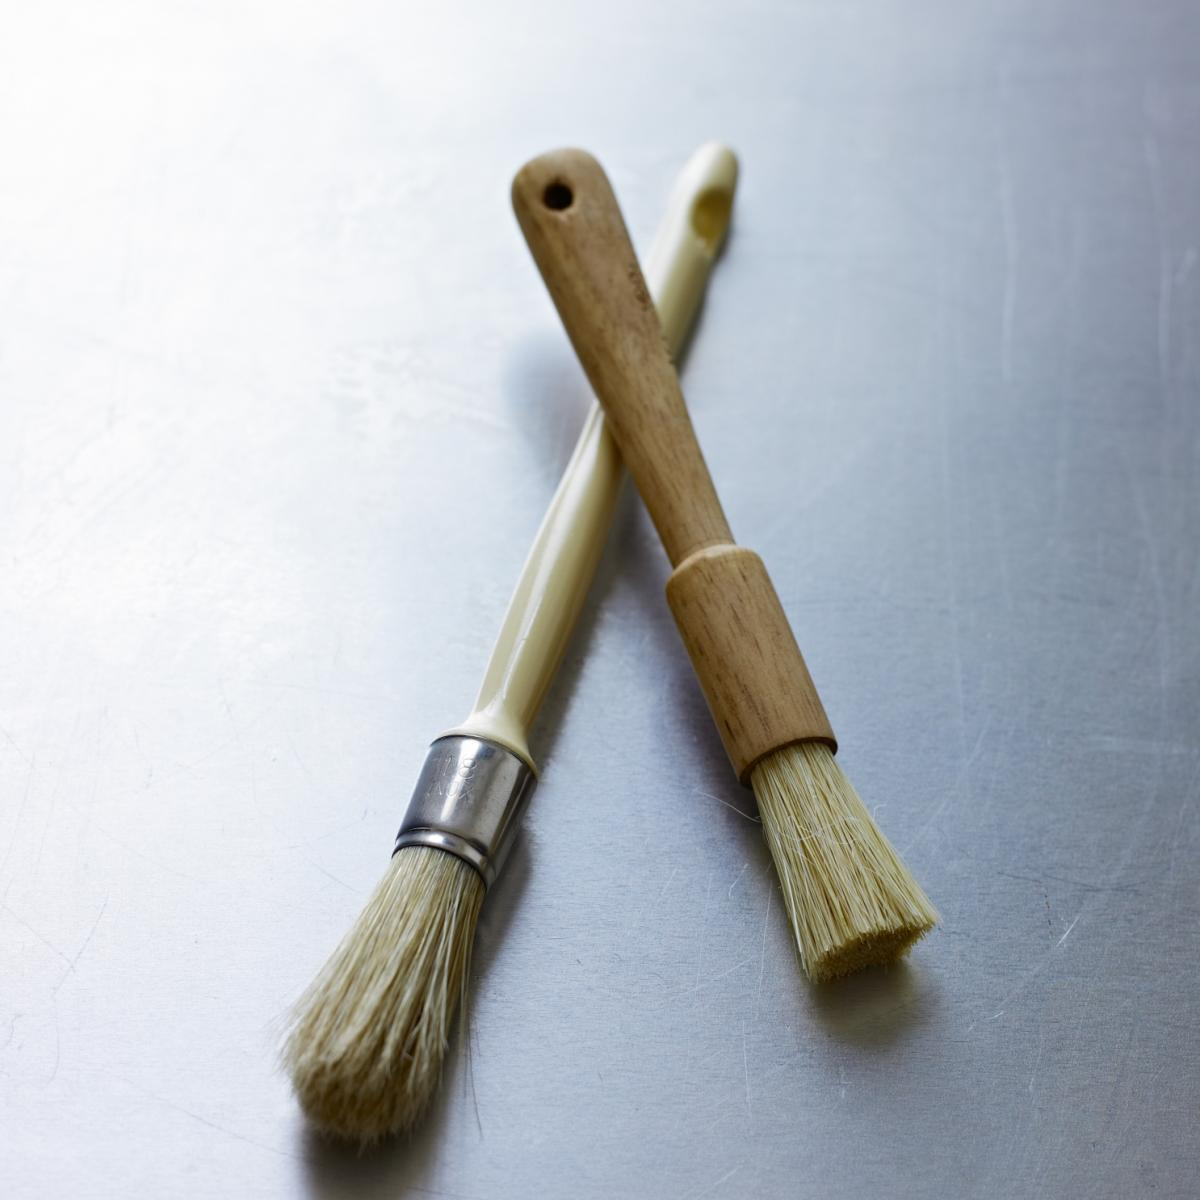 Equipment pastry brushes